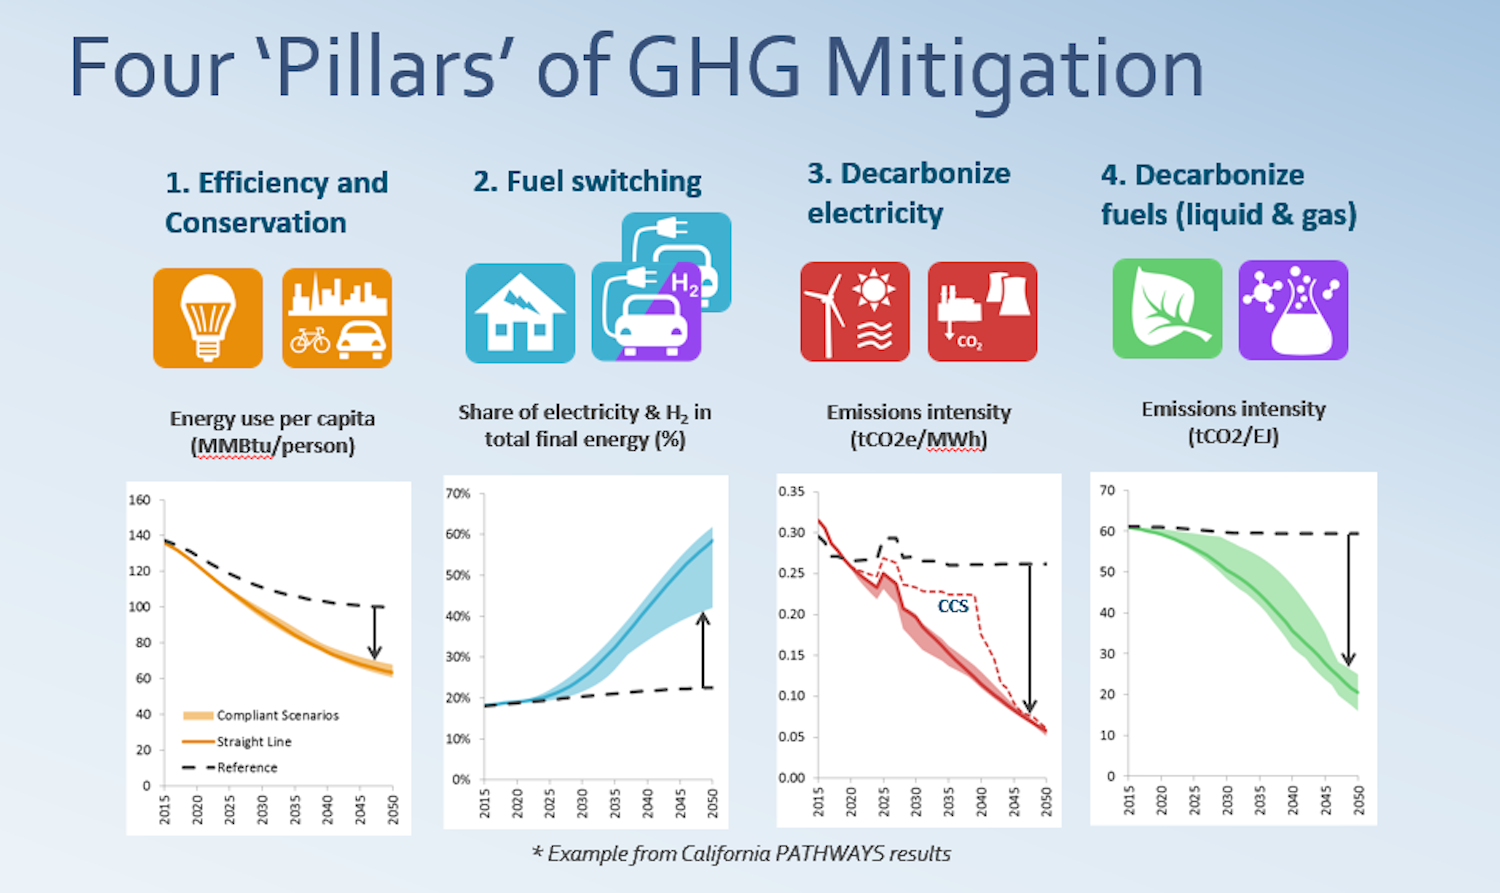 E3's Four Pillars of GHG Mitigation